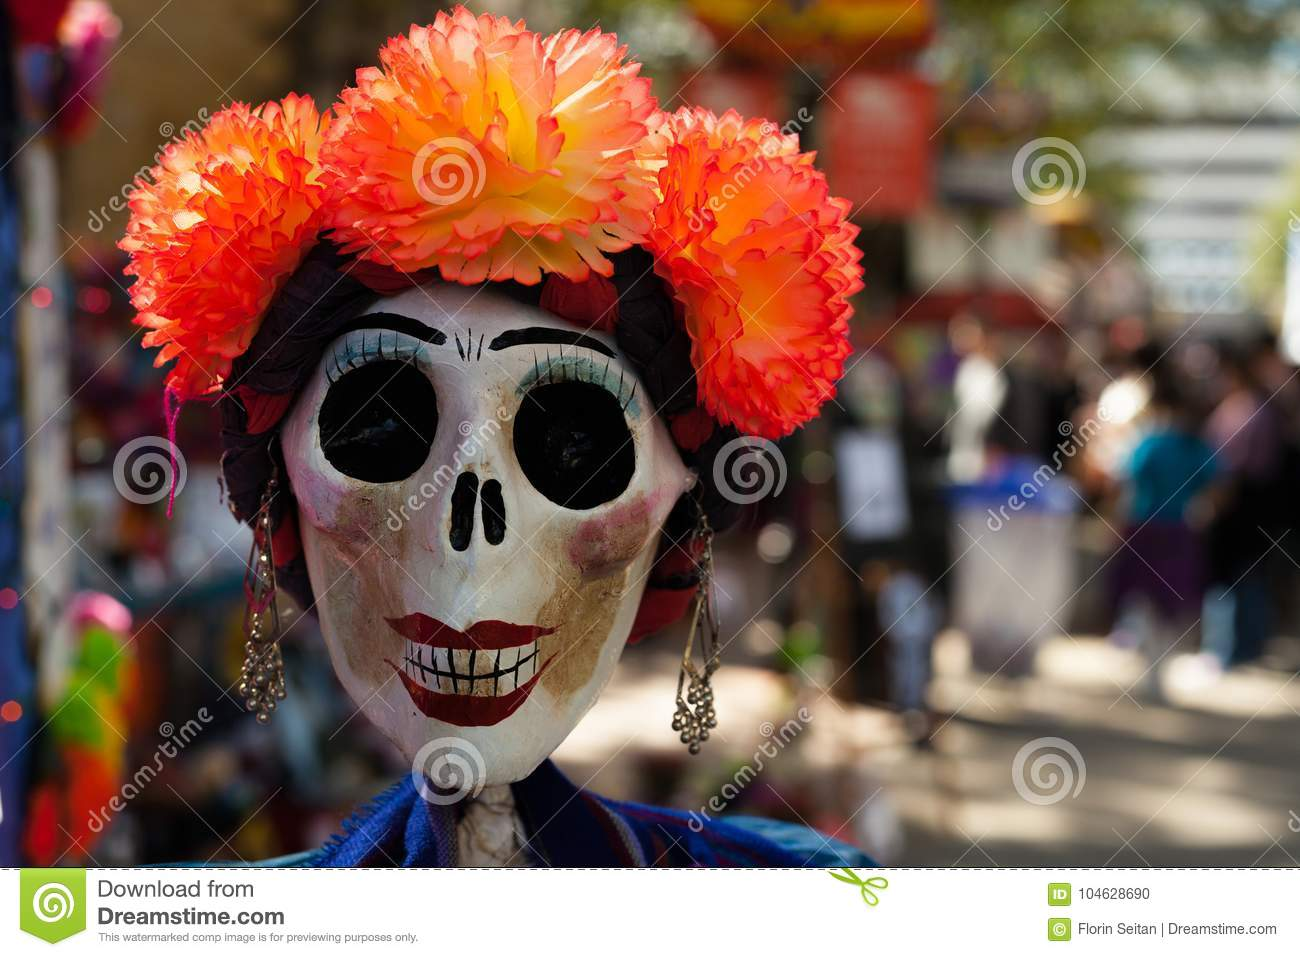 Skull painted and decorated with orange paper mache flowers and earrings/decorated skull for Dia de los Muertos, Day of the Dead